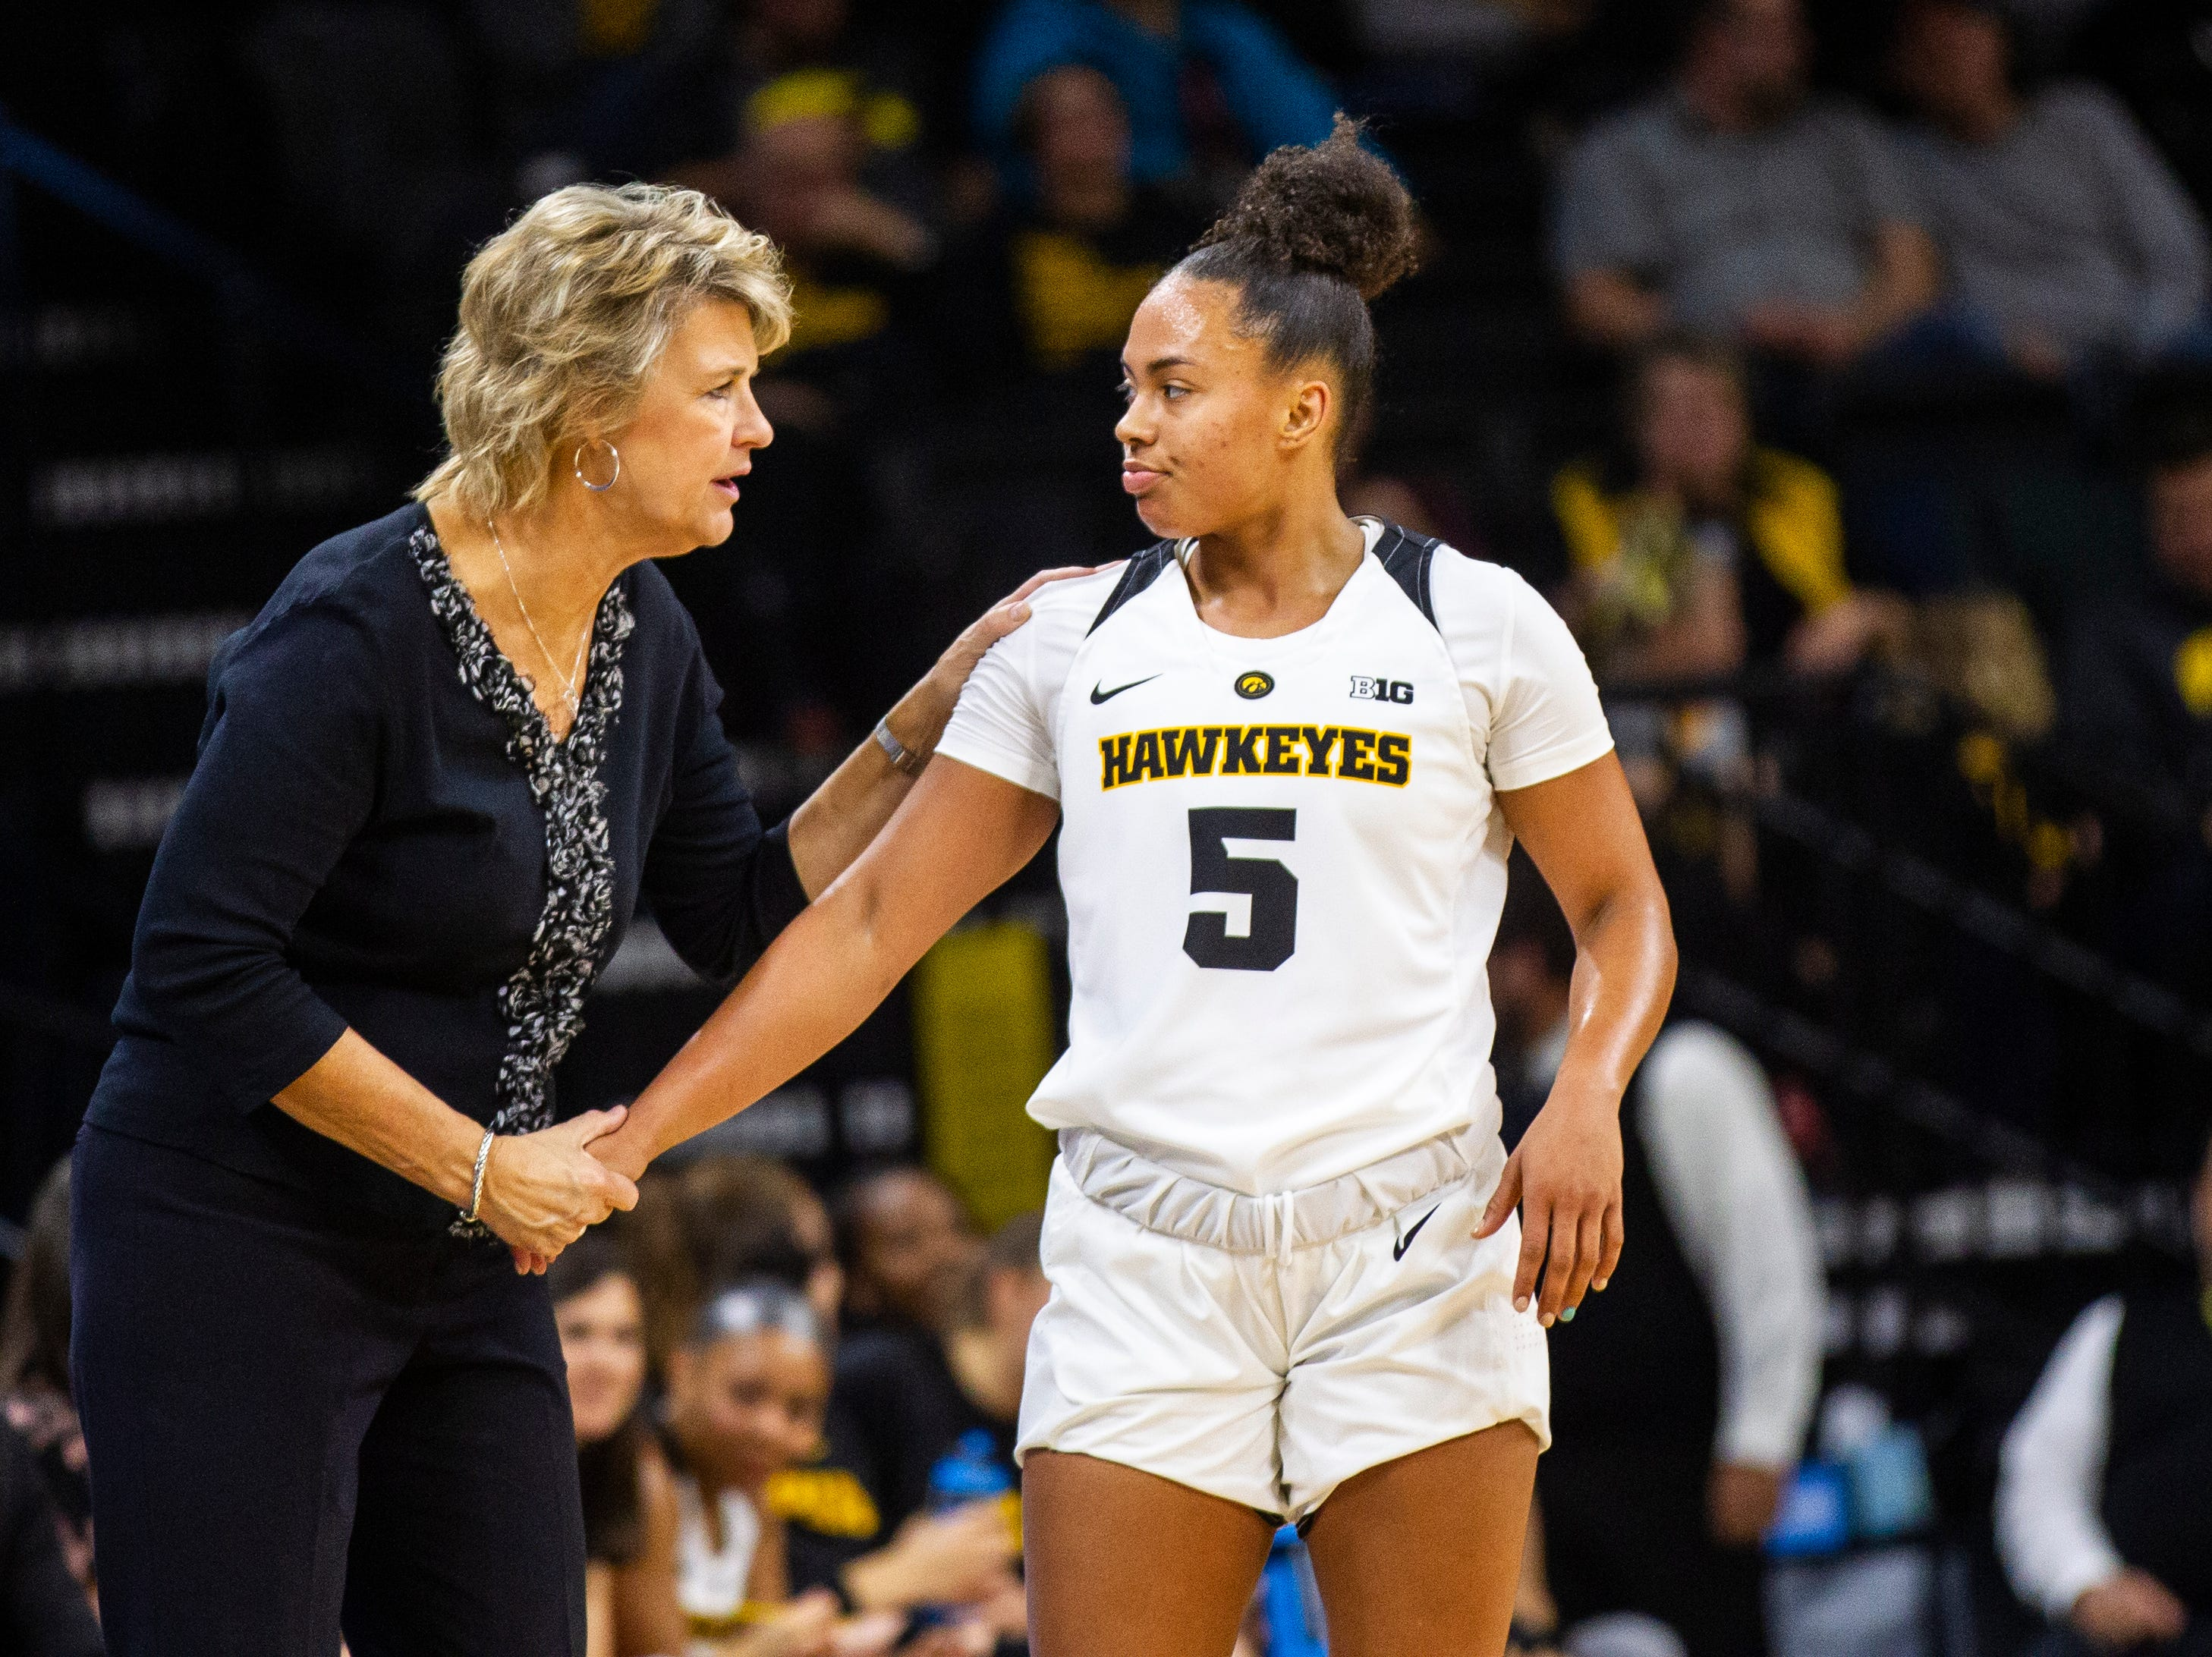 Iowa head coach Lisa Bluder talks with Iowa guard Alexis Sevillian (5) during a women's basketball exhibition basketball game on Tuesday, Nov. 6, 2018, at Carver-Hawkeye Arena in Iowa City.